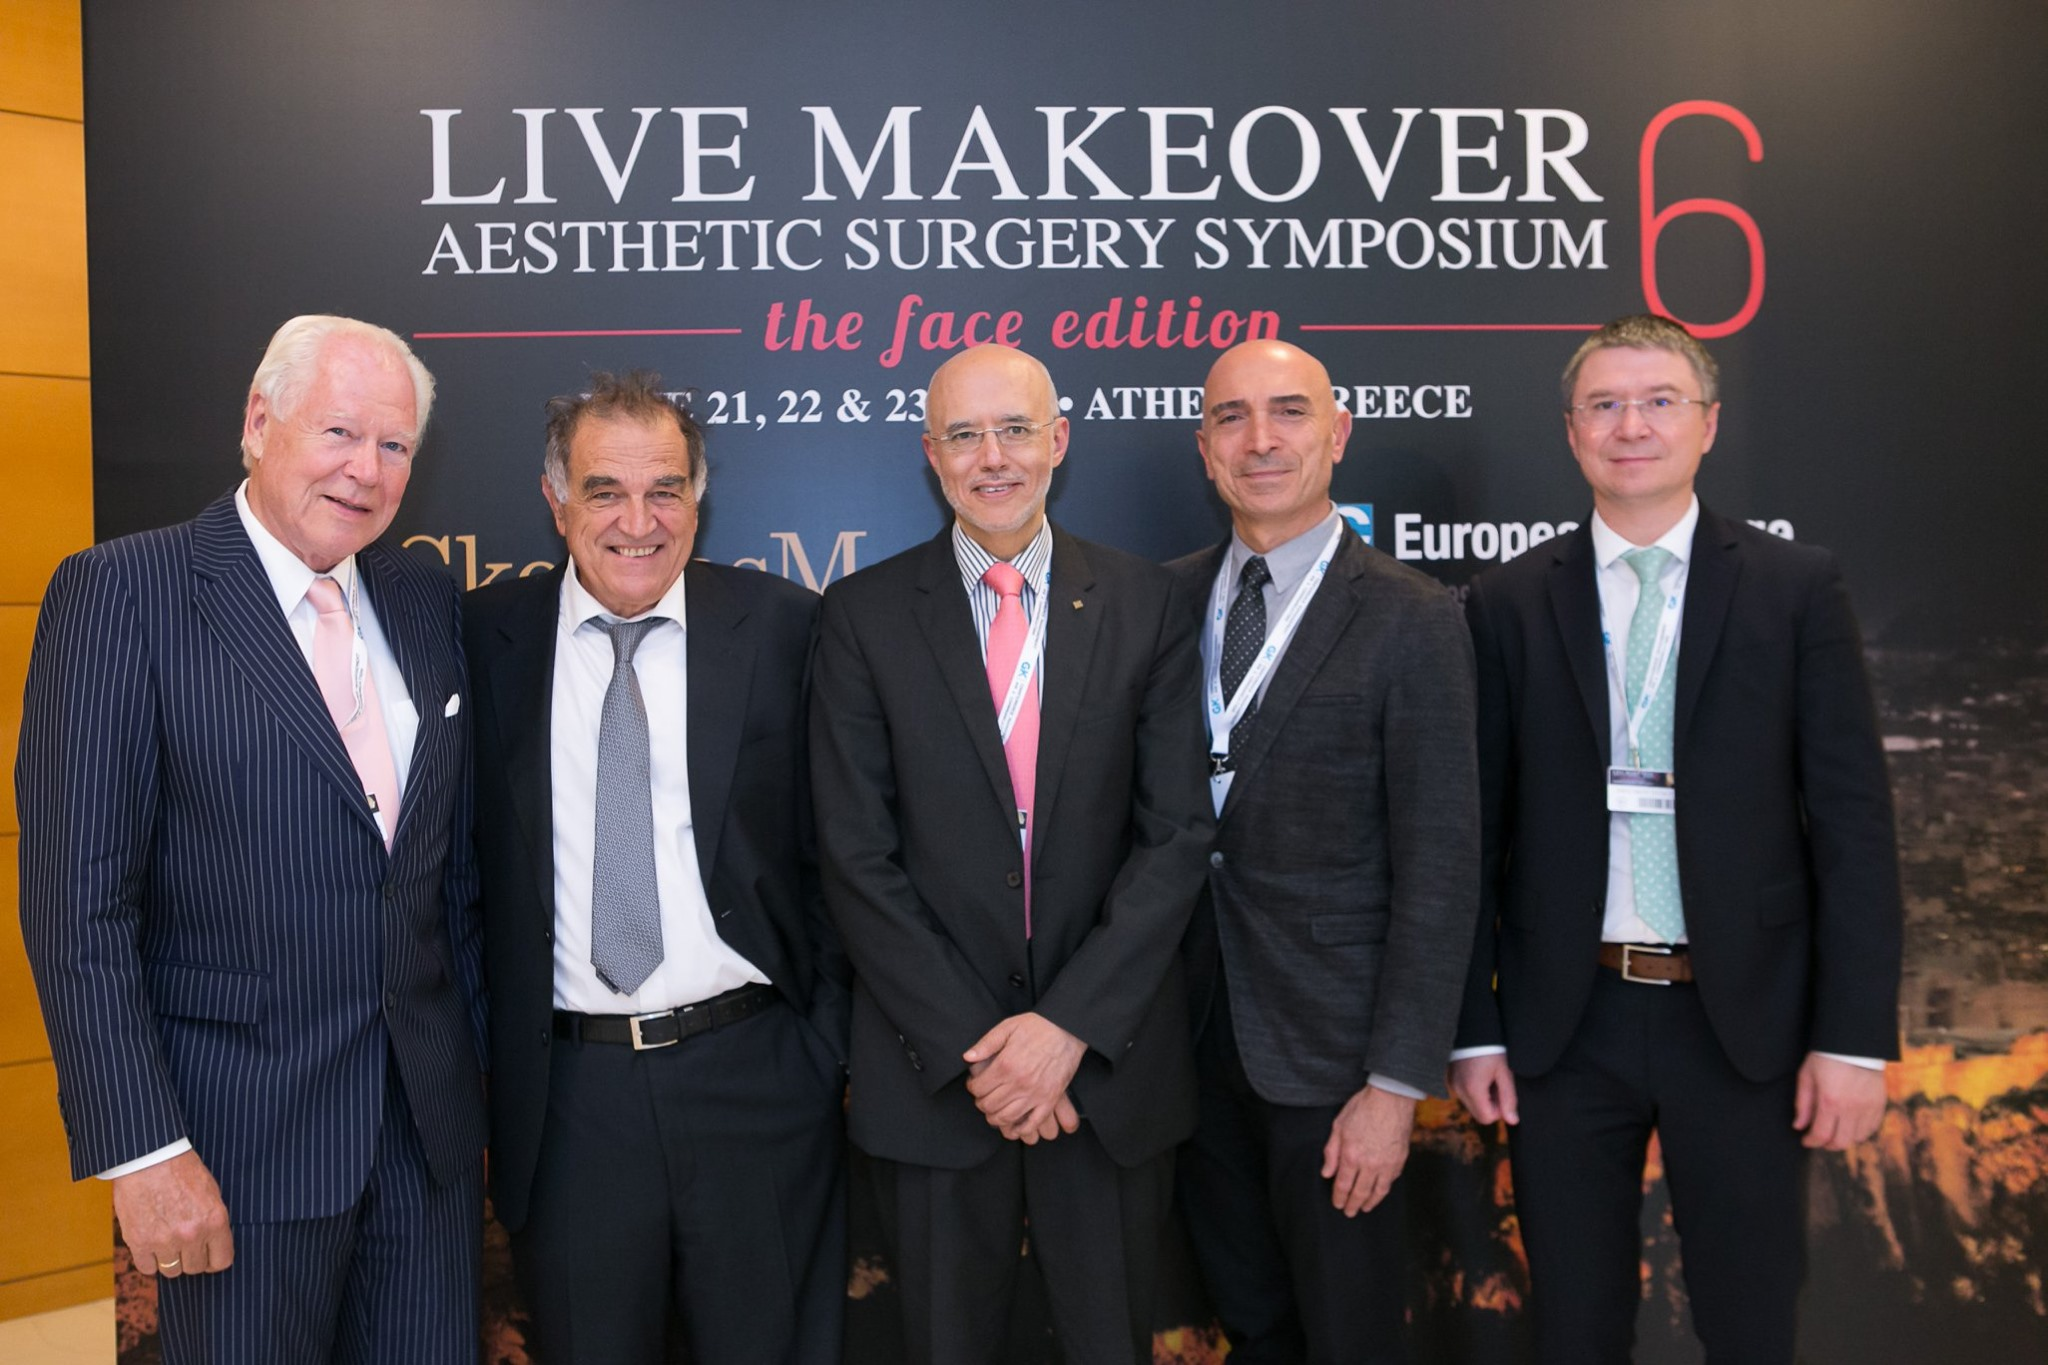 Live Makeover 6 Aesthetic Surgery Symposium